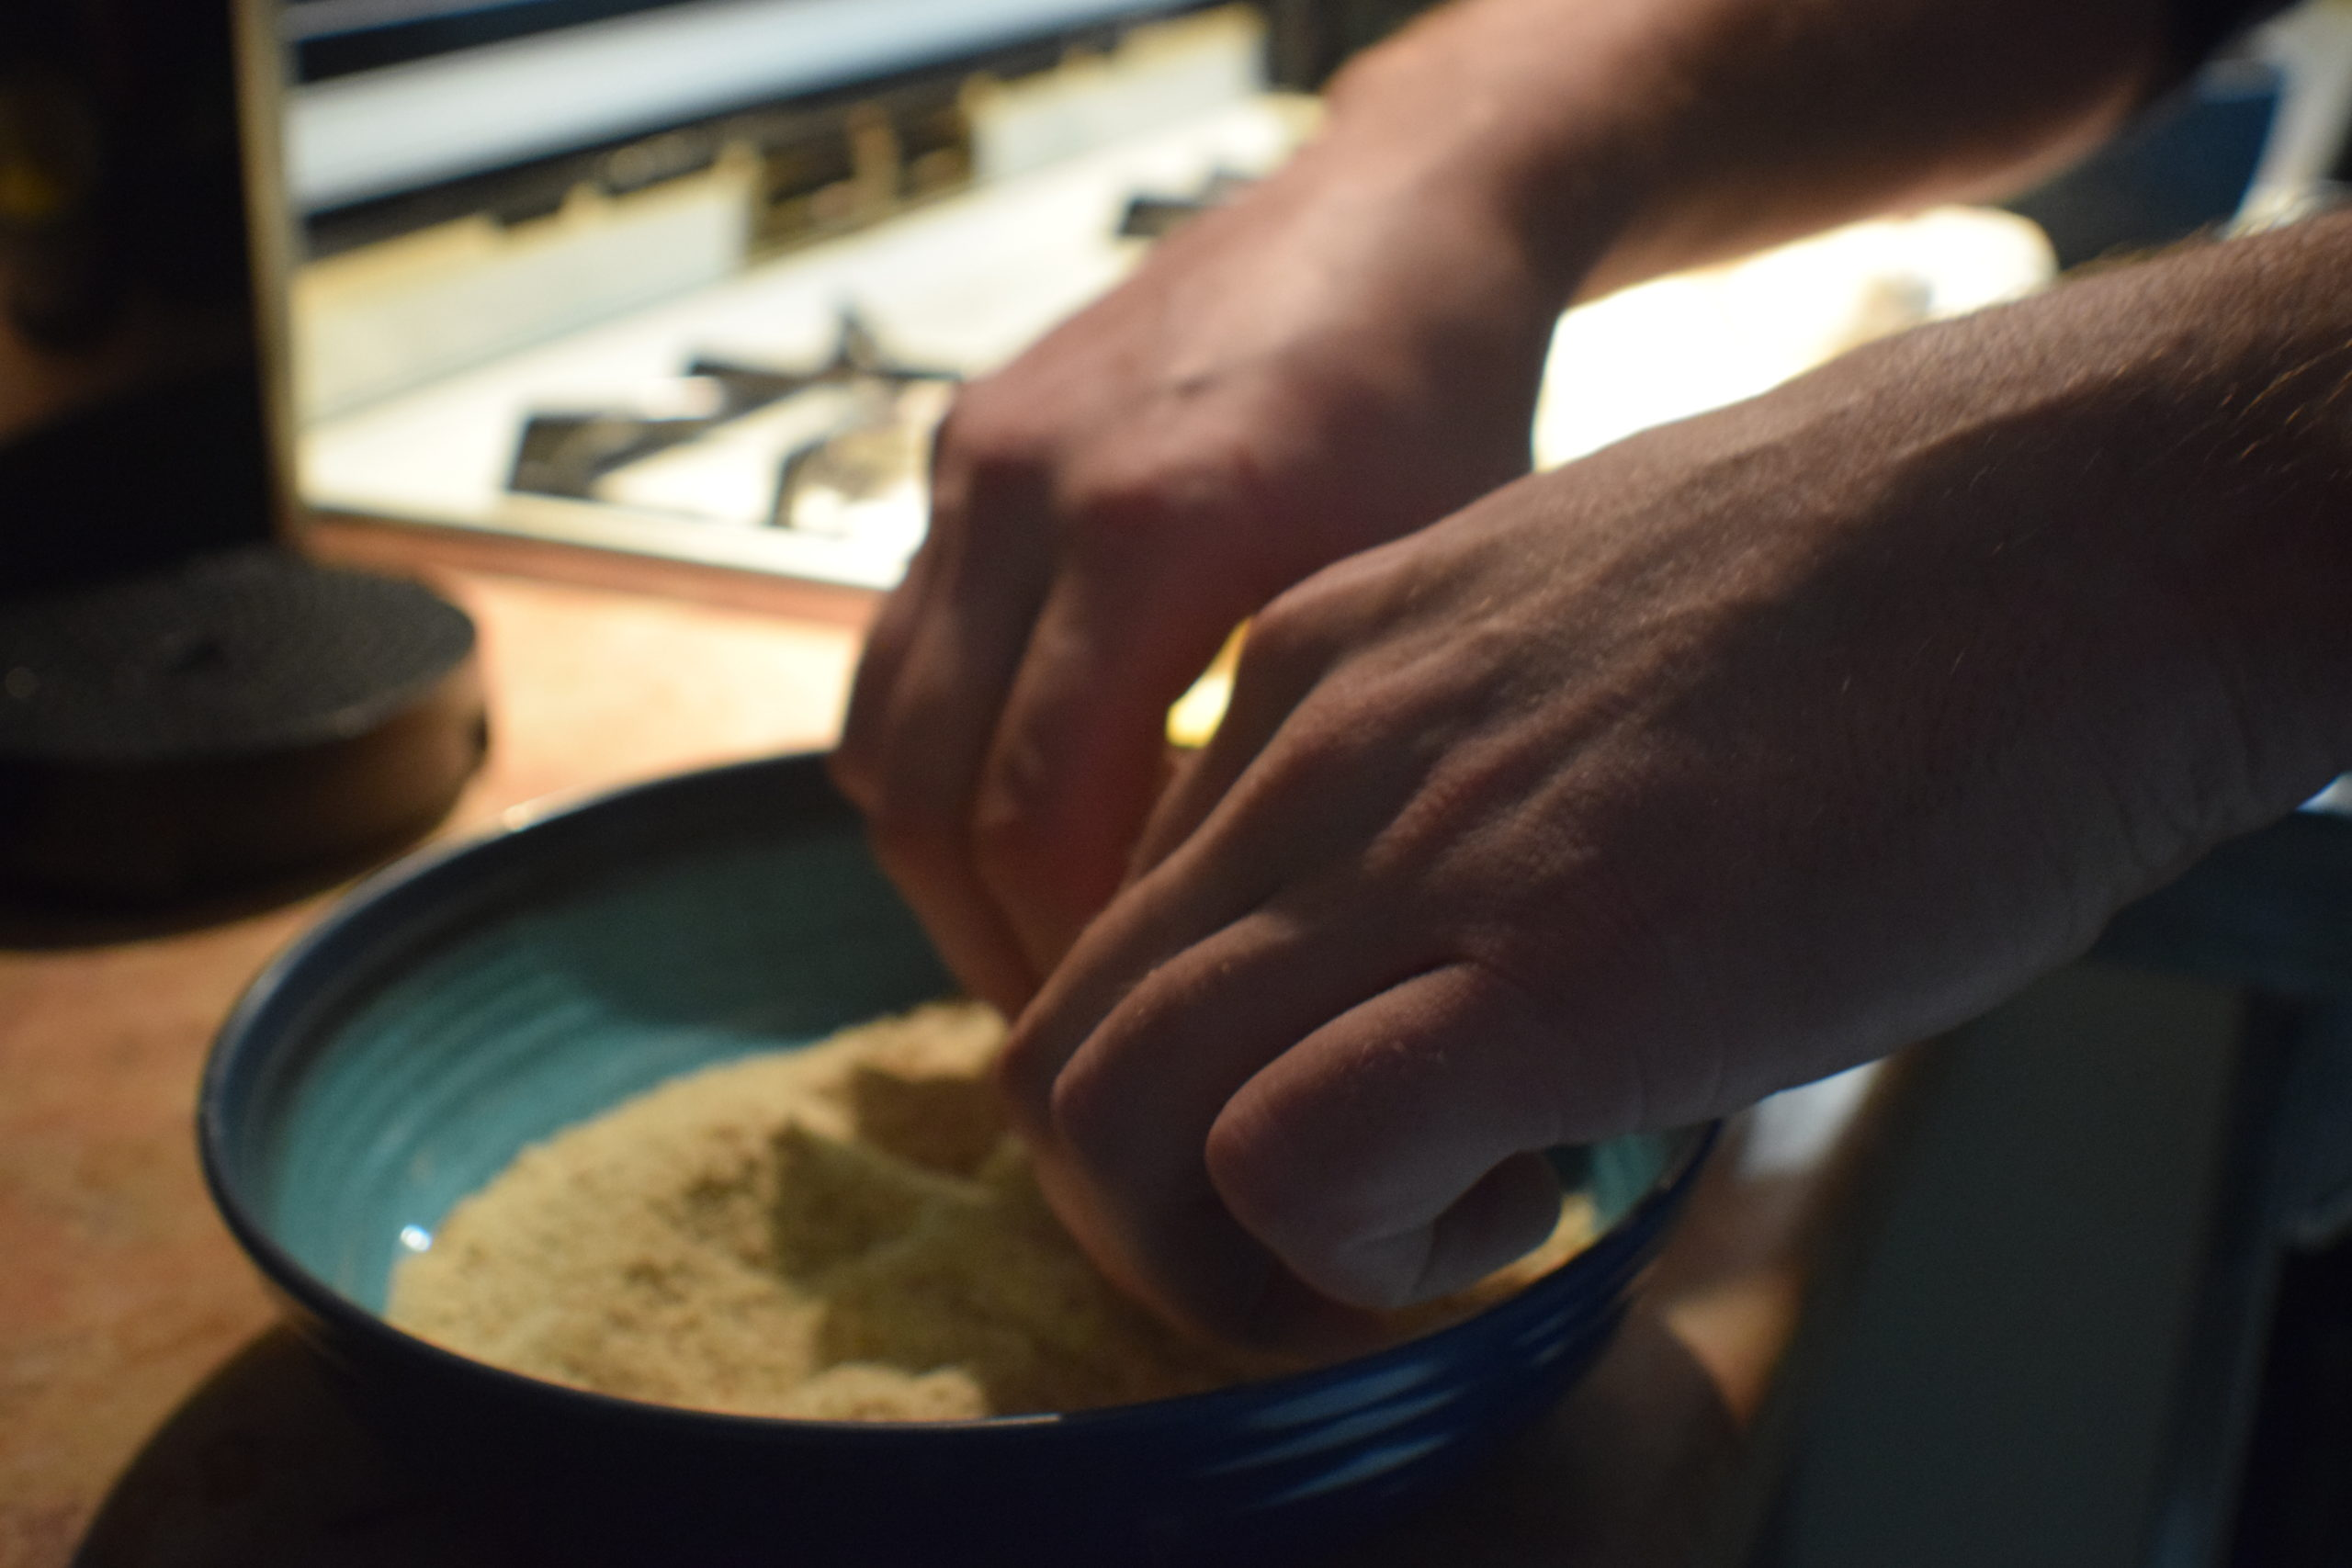 Man hands rolling food into breadcrumbs in a blue bowl